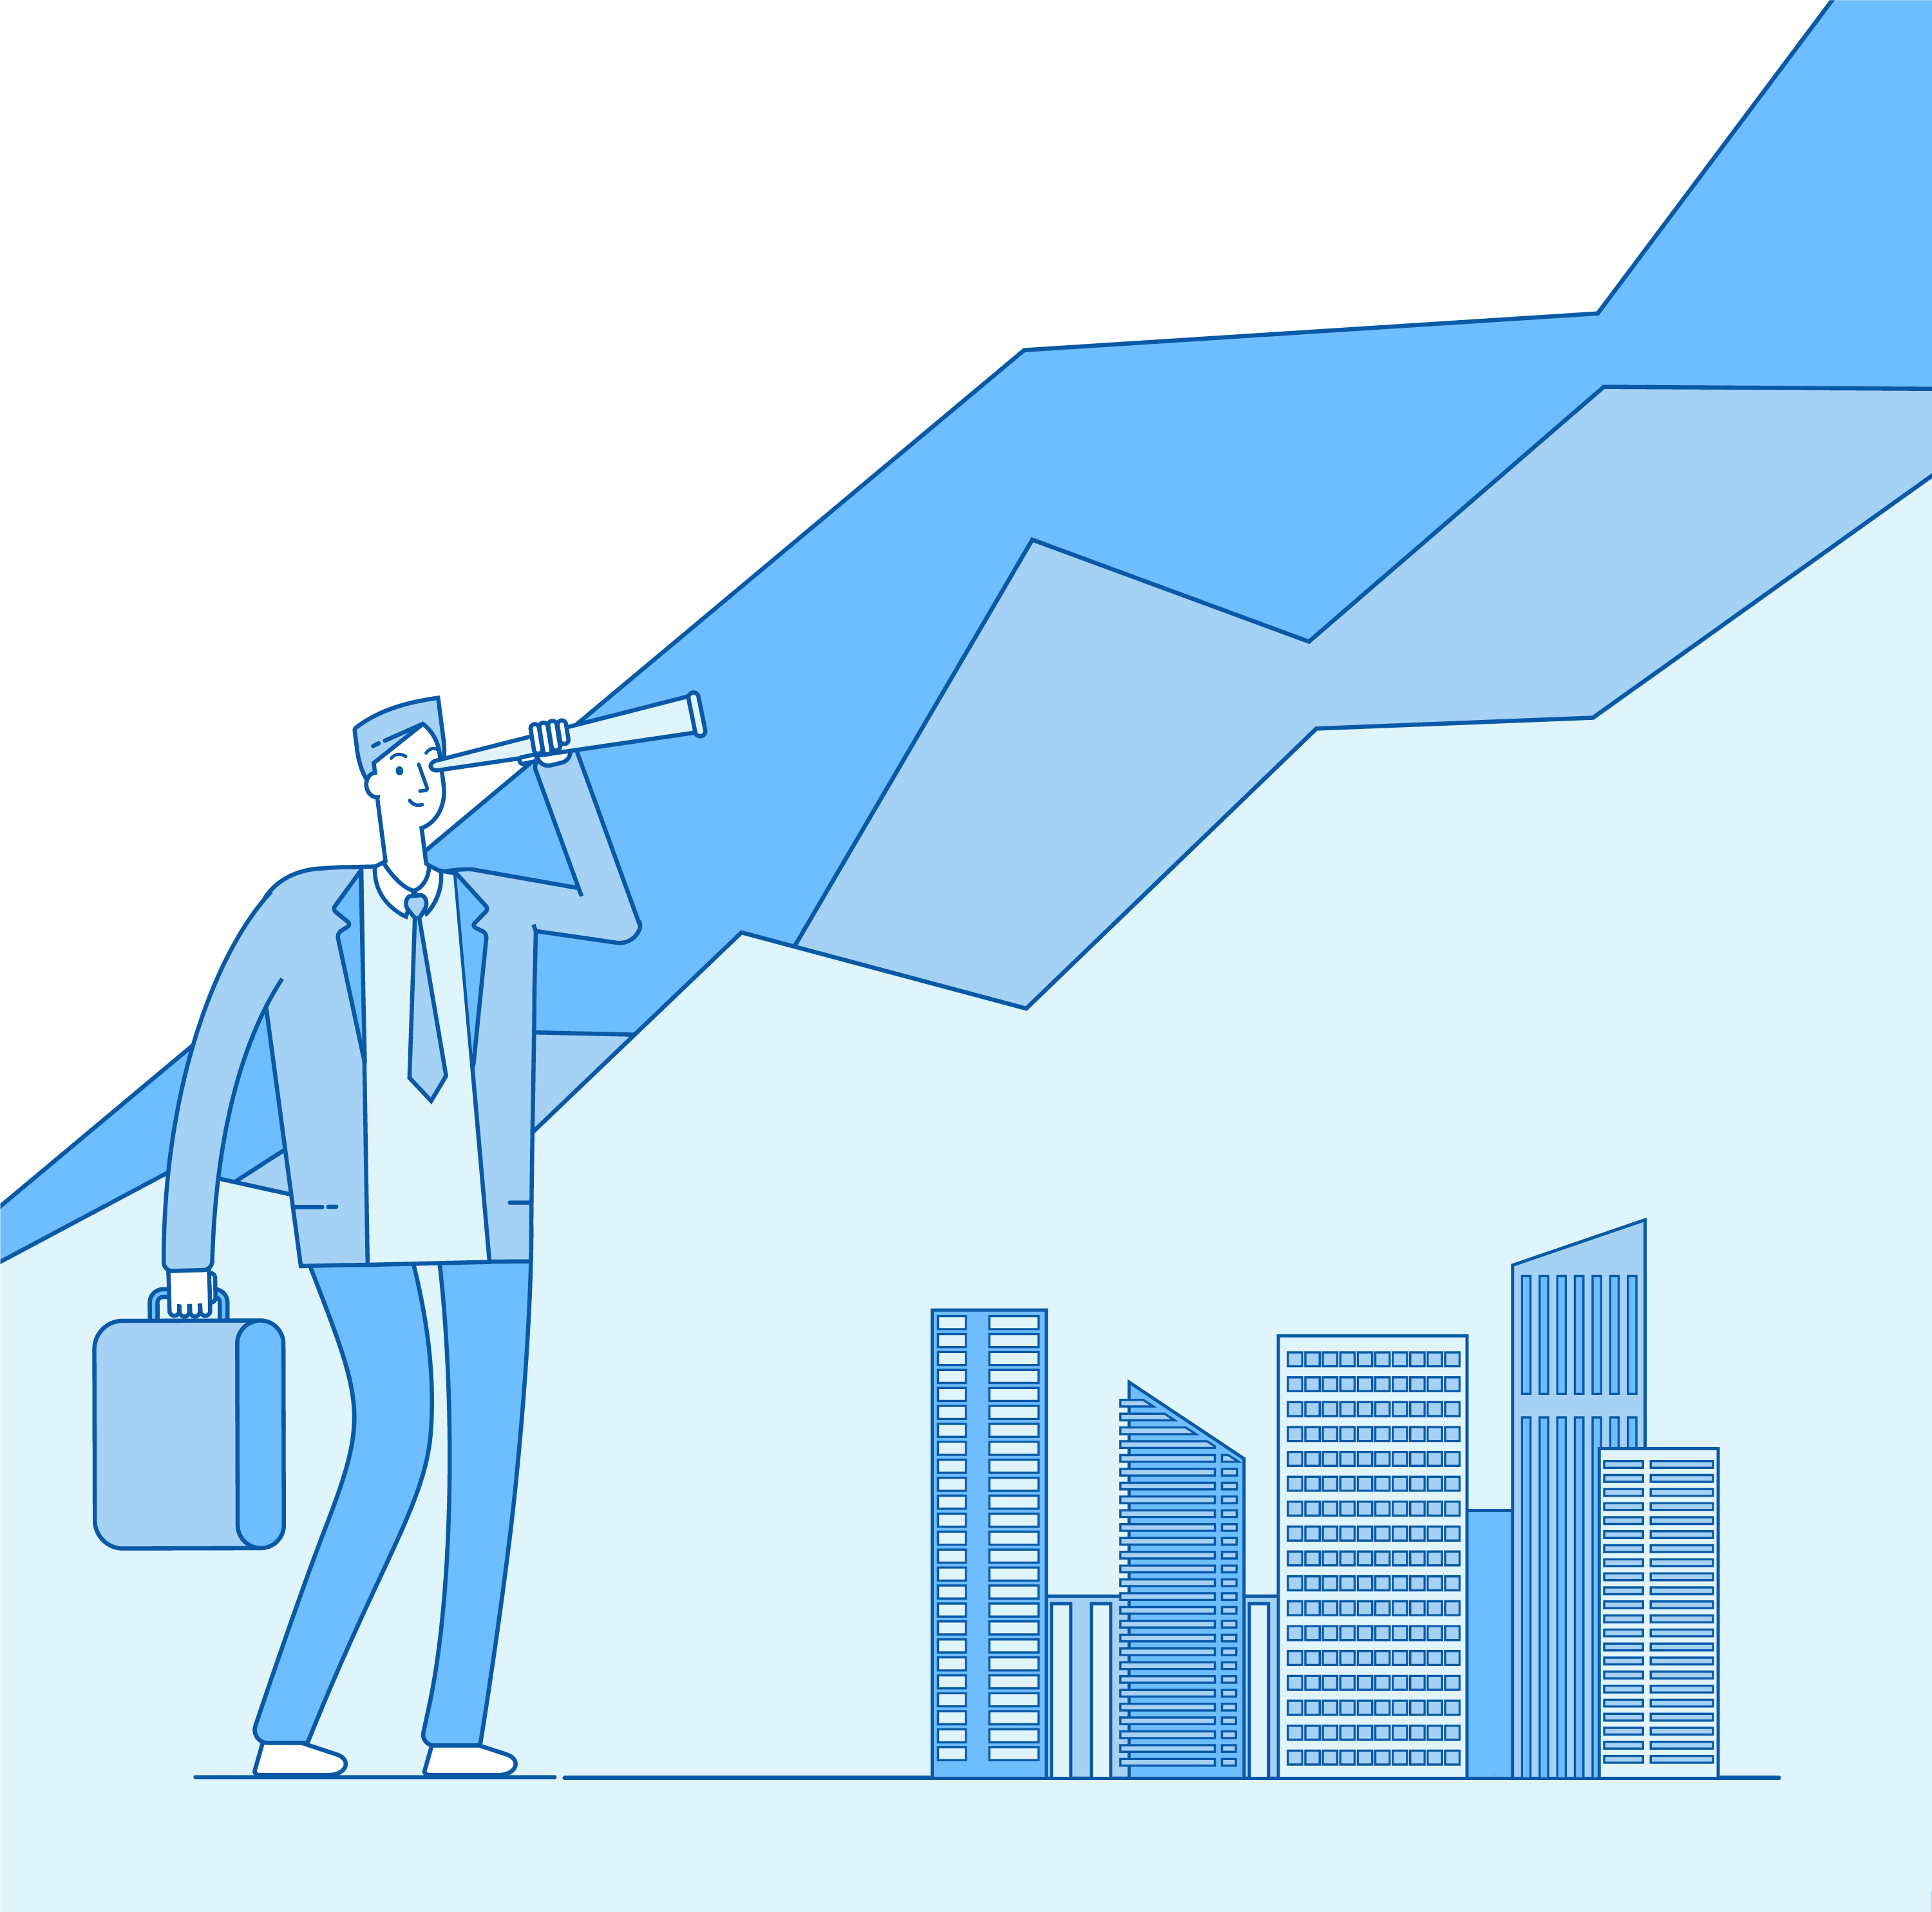 Build Credible, Data-driven Forecasts for Your CRE Development Project